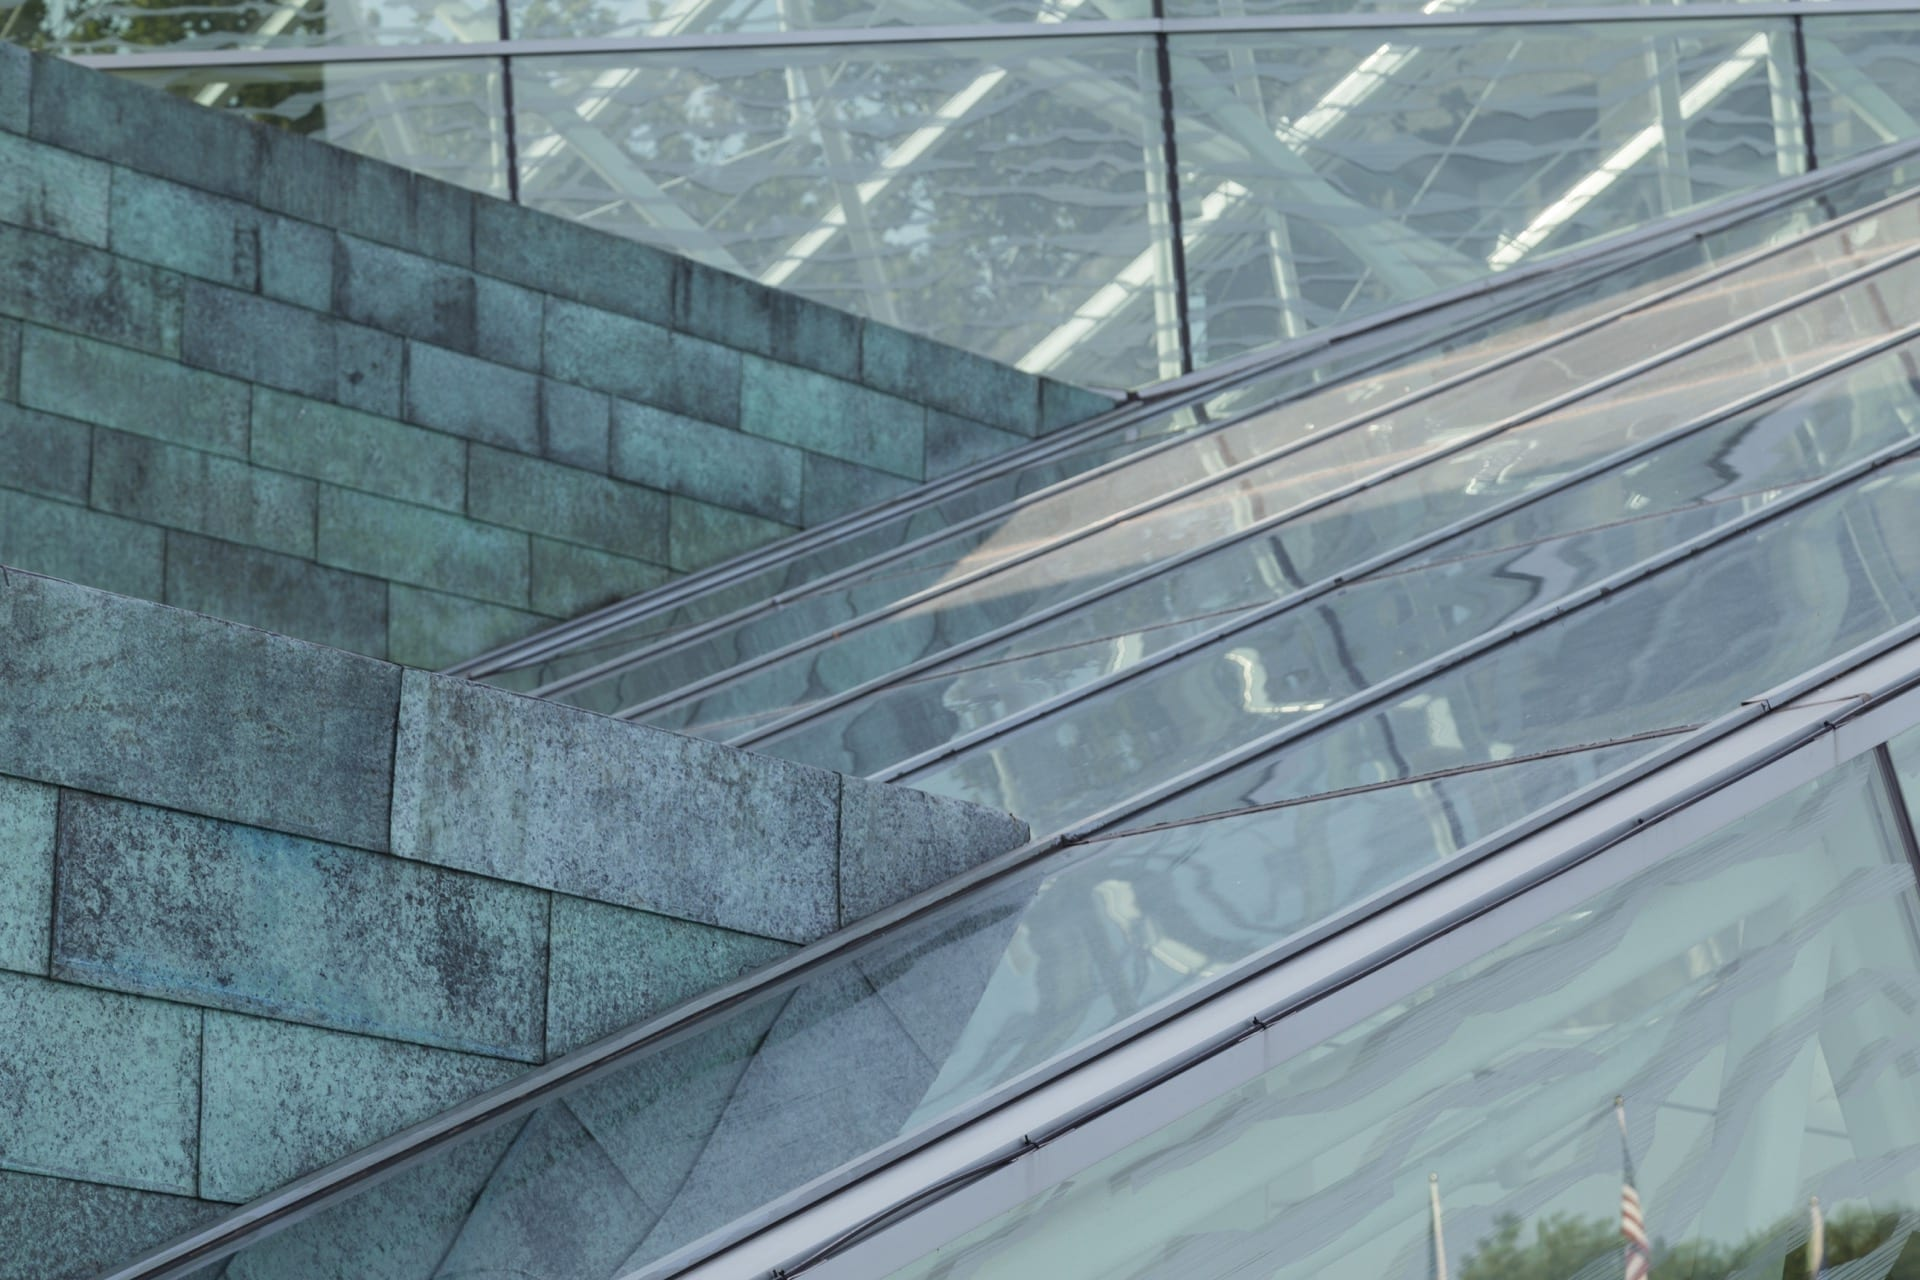 Detail of the copper and glass facade of SUNY New Paltz